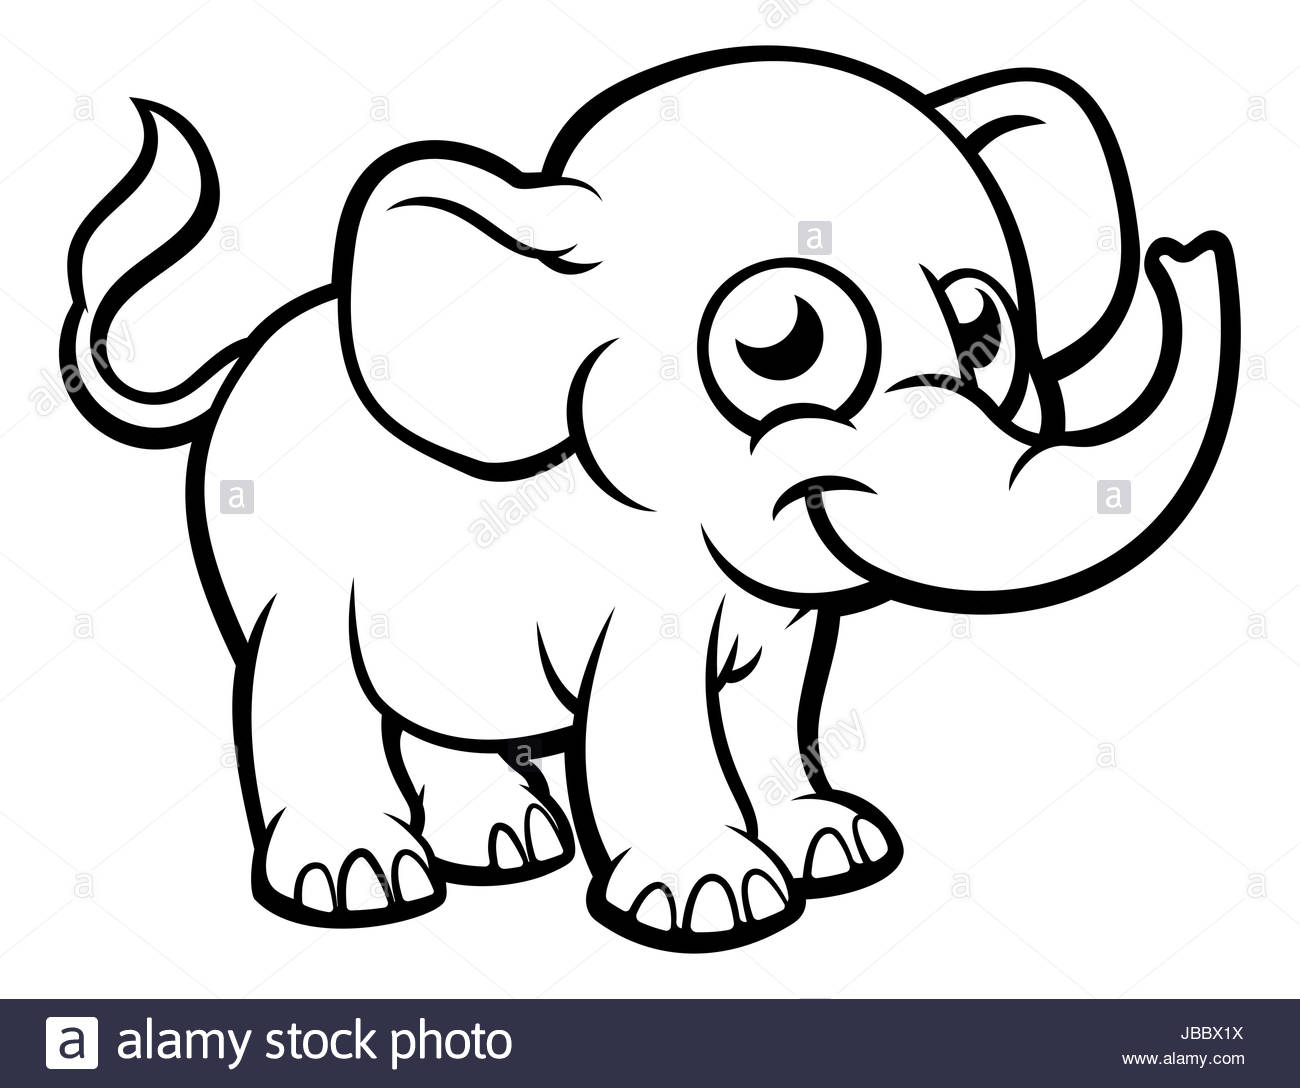 Cute Elephant Cartoon Wallpapers Elephant Black And White Drawing At Getdrawings Com Free